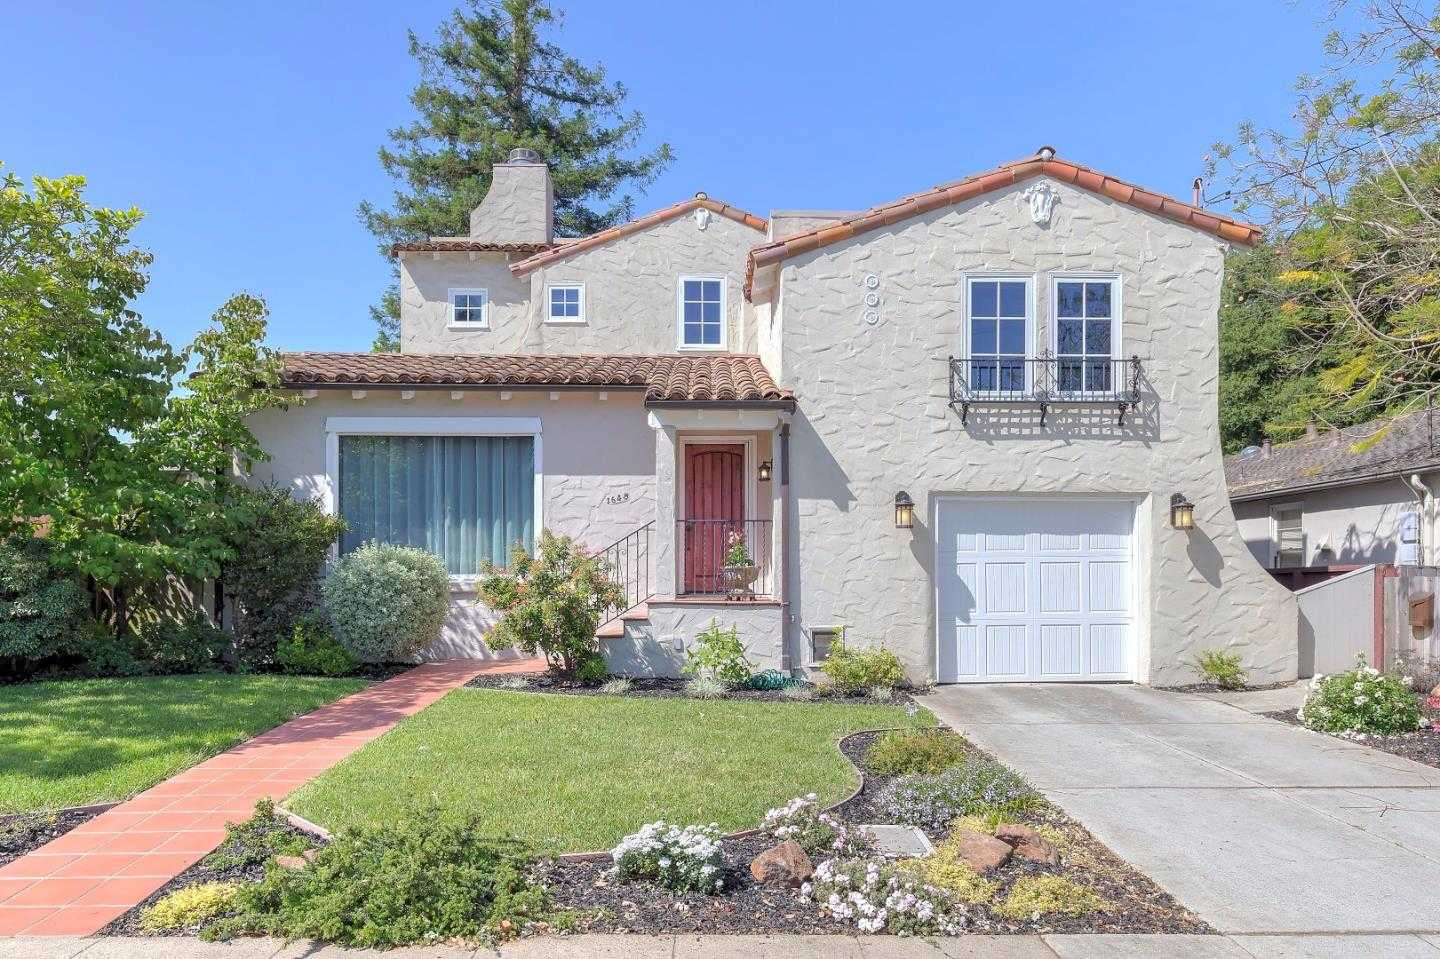 $2,328,000 - 3Br/3Ba -  for Sale in San Carlos